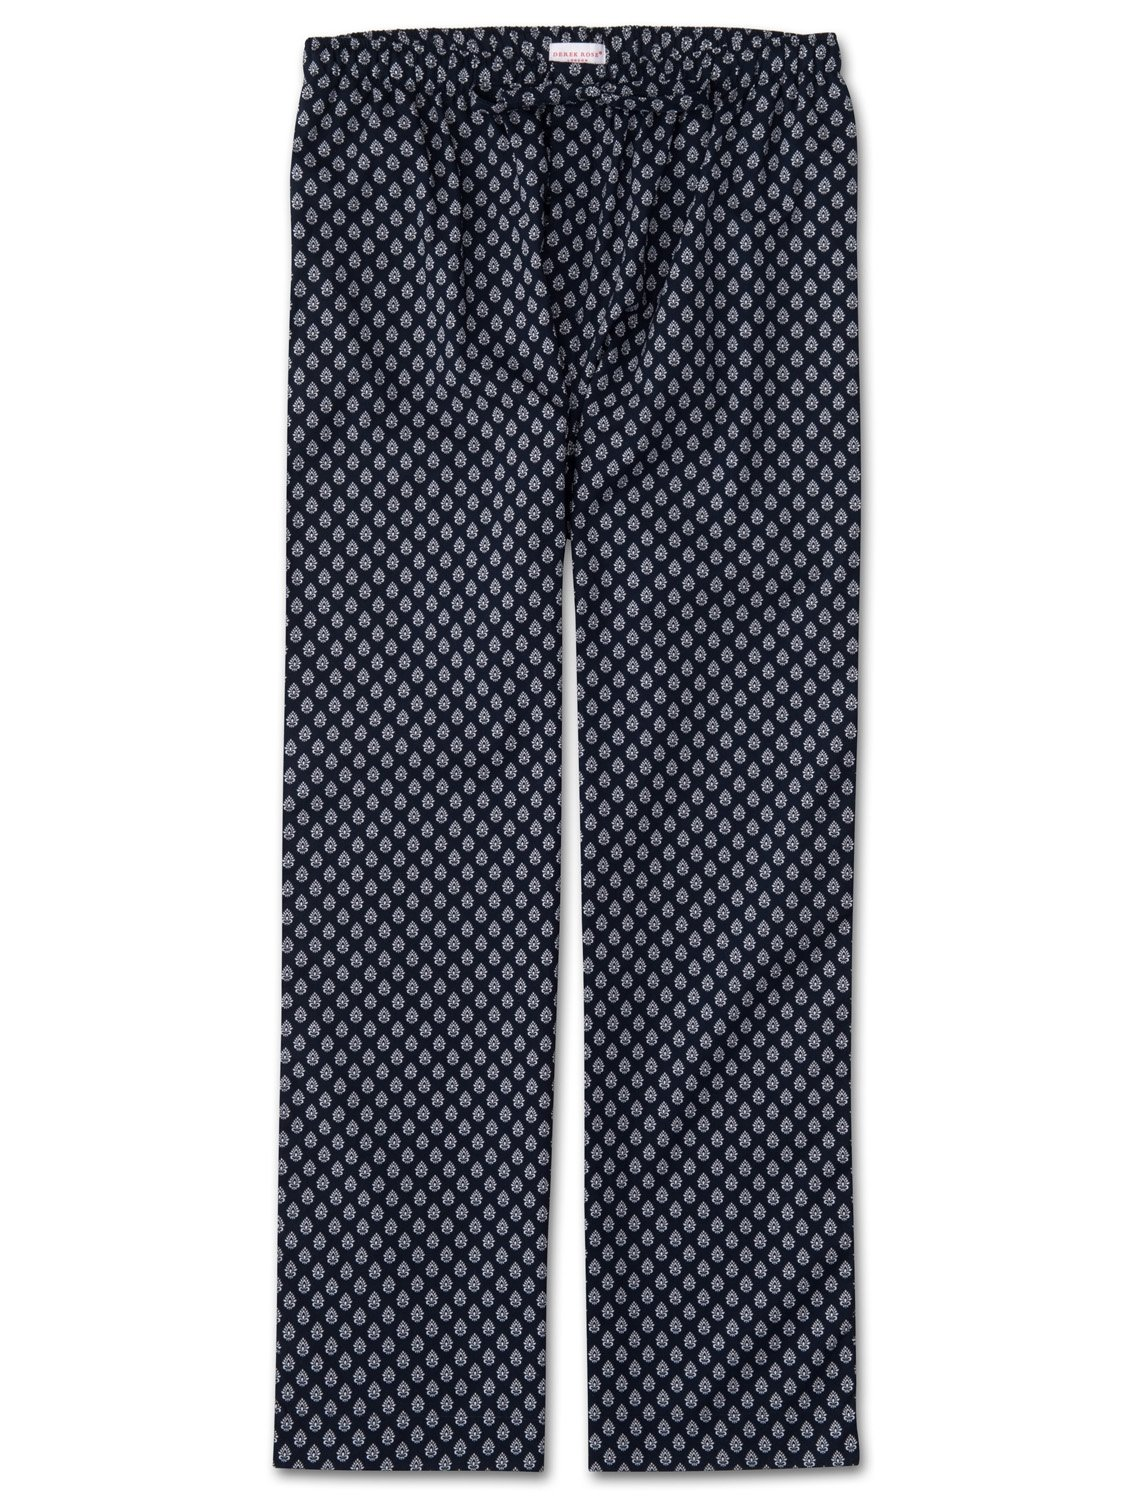 Men's Lounge Trousers Nelson 64 Cotton Batiste Navy